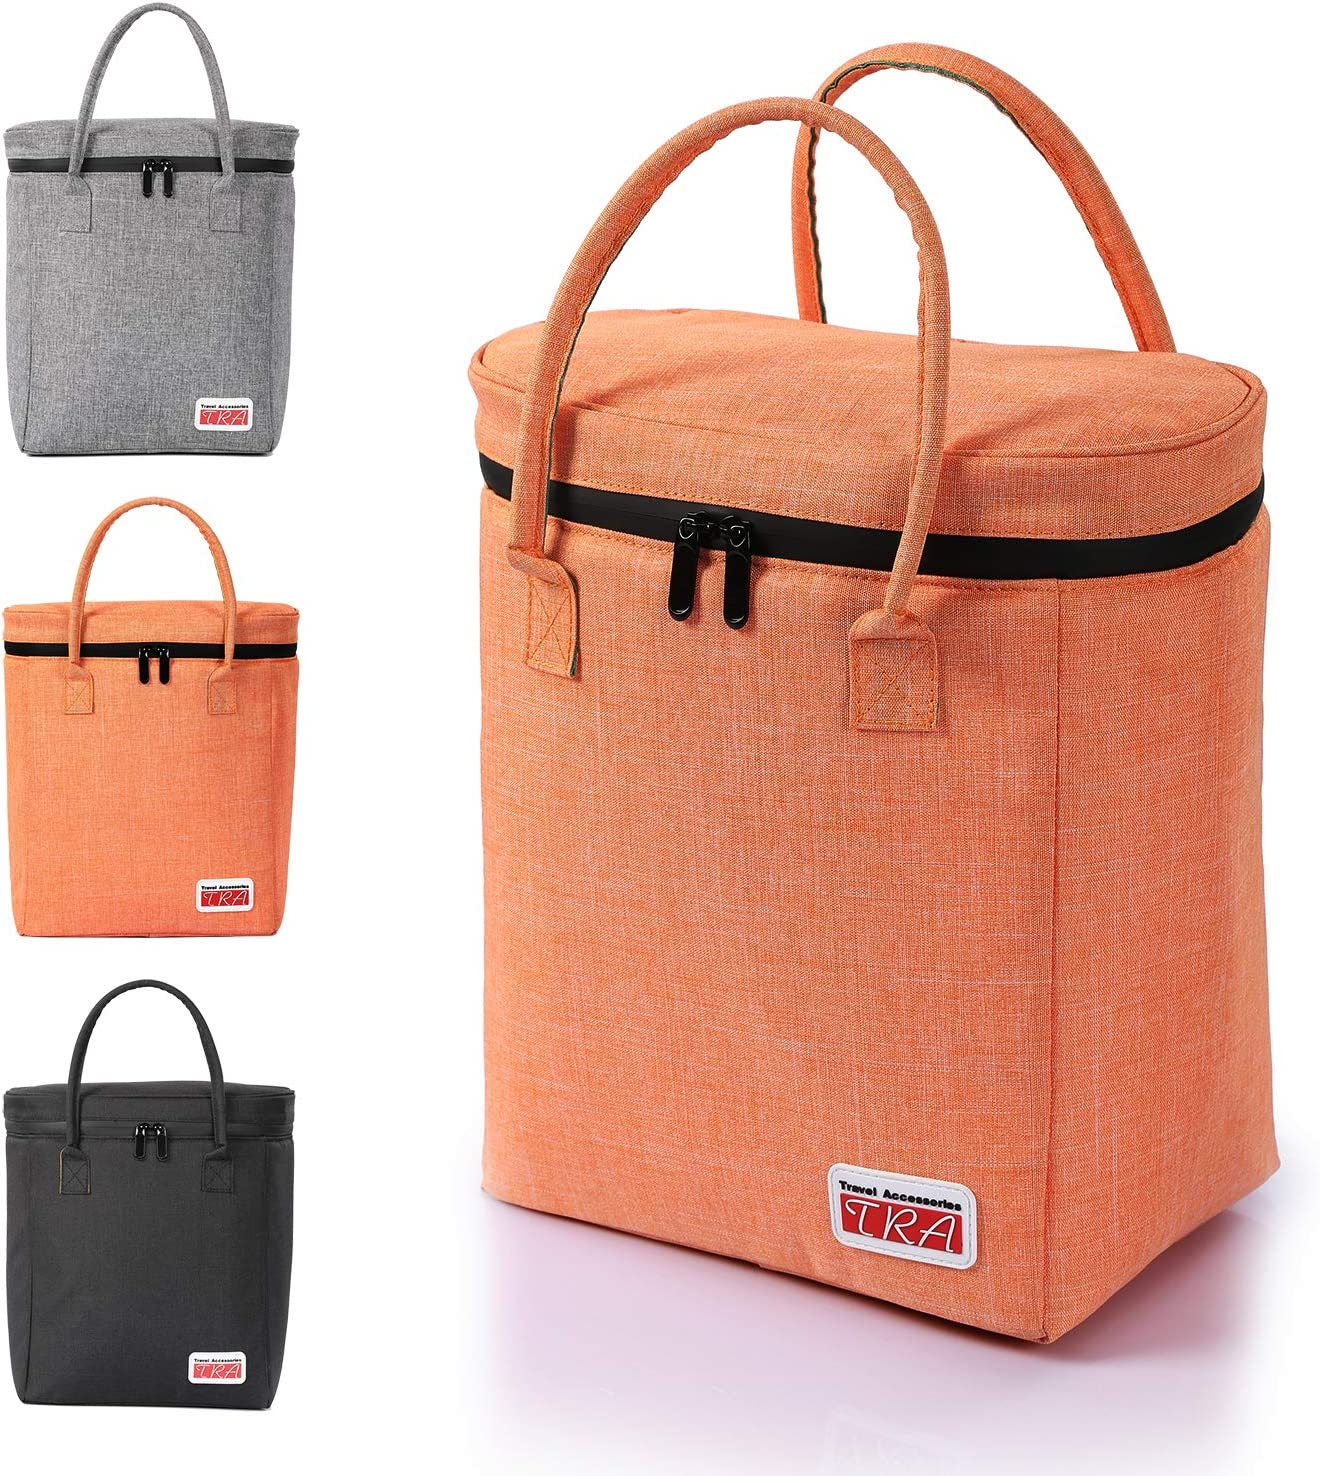 Insulated Cooler Bag/PicnicTote/Car Cooler/Reusable Collapsible Grocery Bag; Waterproof Material & Zip, Leakproof & Eco Friendly Liner, 12.5''H/11.0''L/7.1''W (Orange)